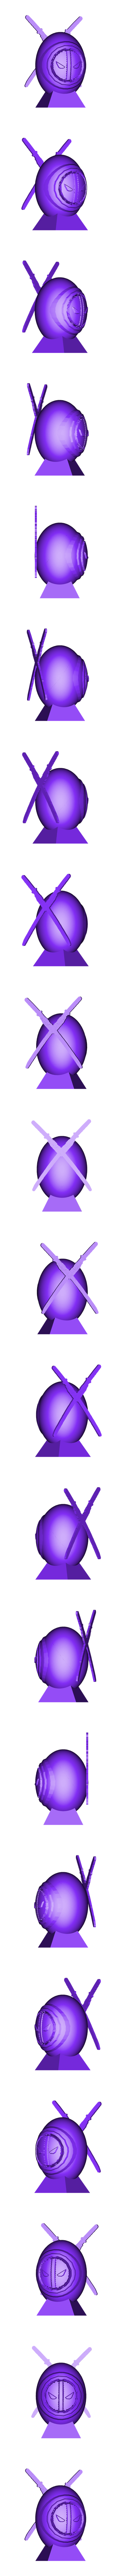 Super oeufs dead pool.stl Download free STL file Super Eggs Collection with base • 3D printer object, psl